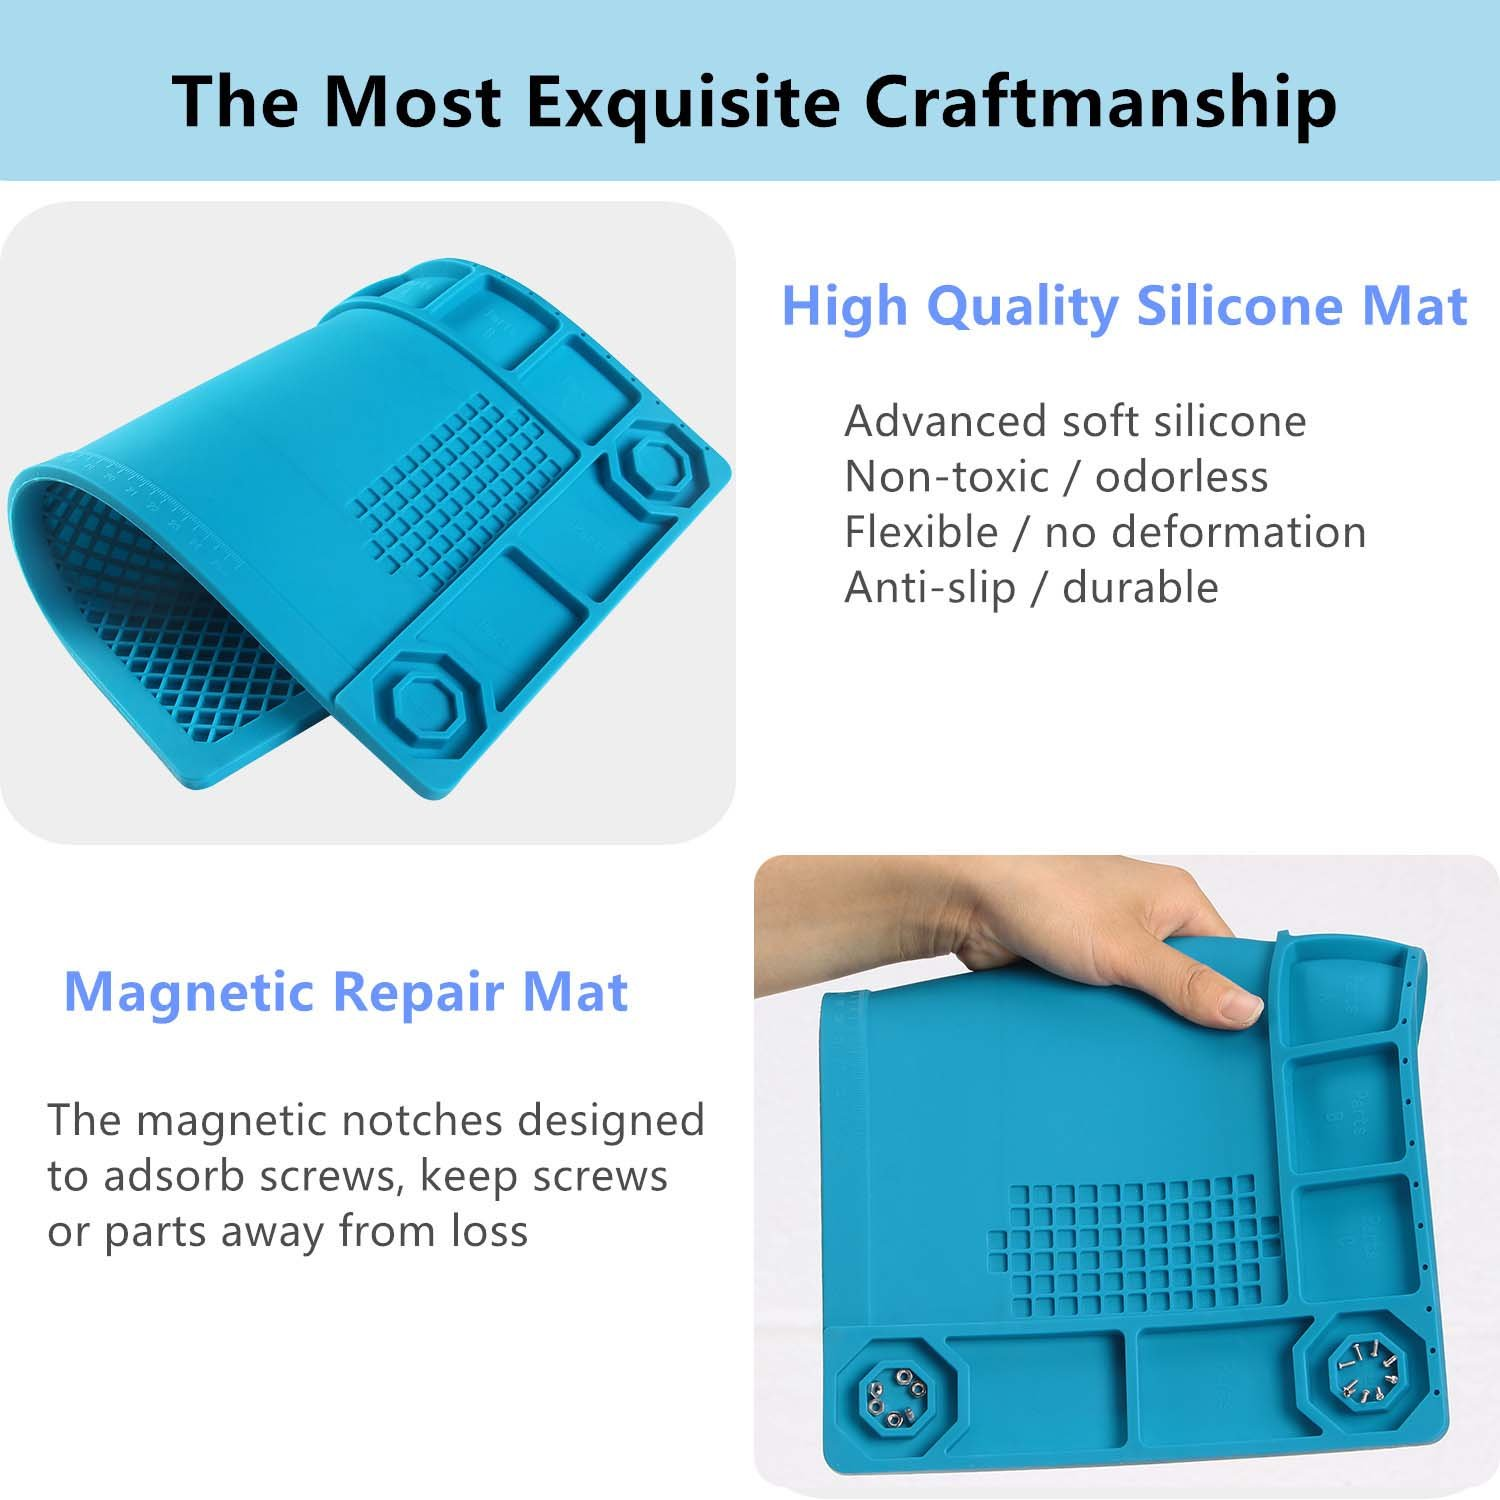 SEASWAL Silicone Solder Mat, Magnetic Heat Insulation Work Mat, with Tools Parts Organizer Electronics Repair Mat for Soldering Iron, Heat Gun, Phone and Computer Repair 15''x8.3'' Blue by SEASWAL (Image #6)